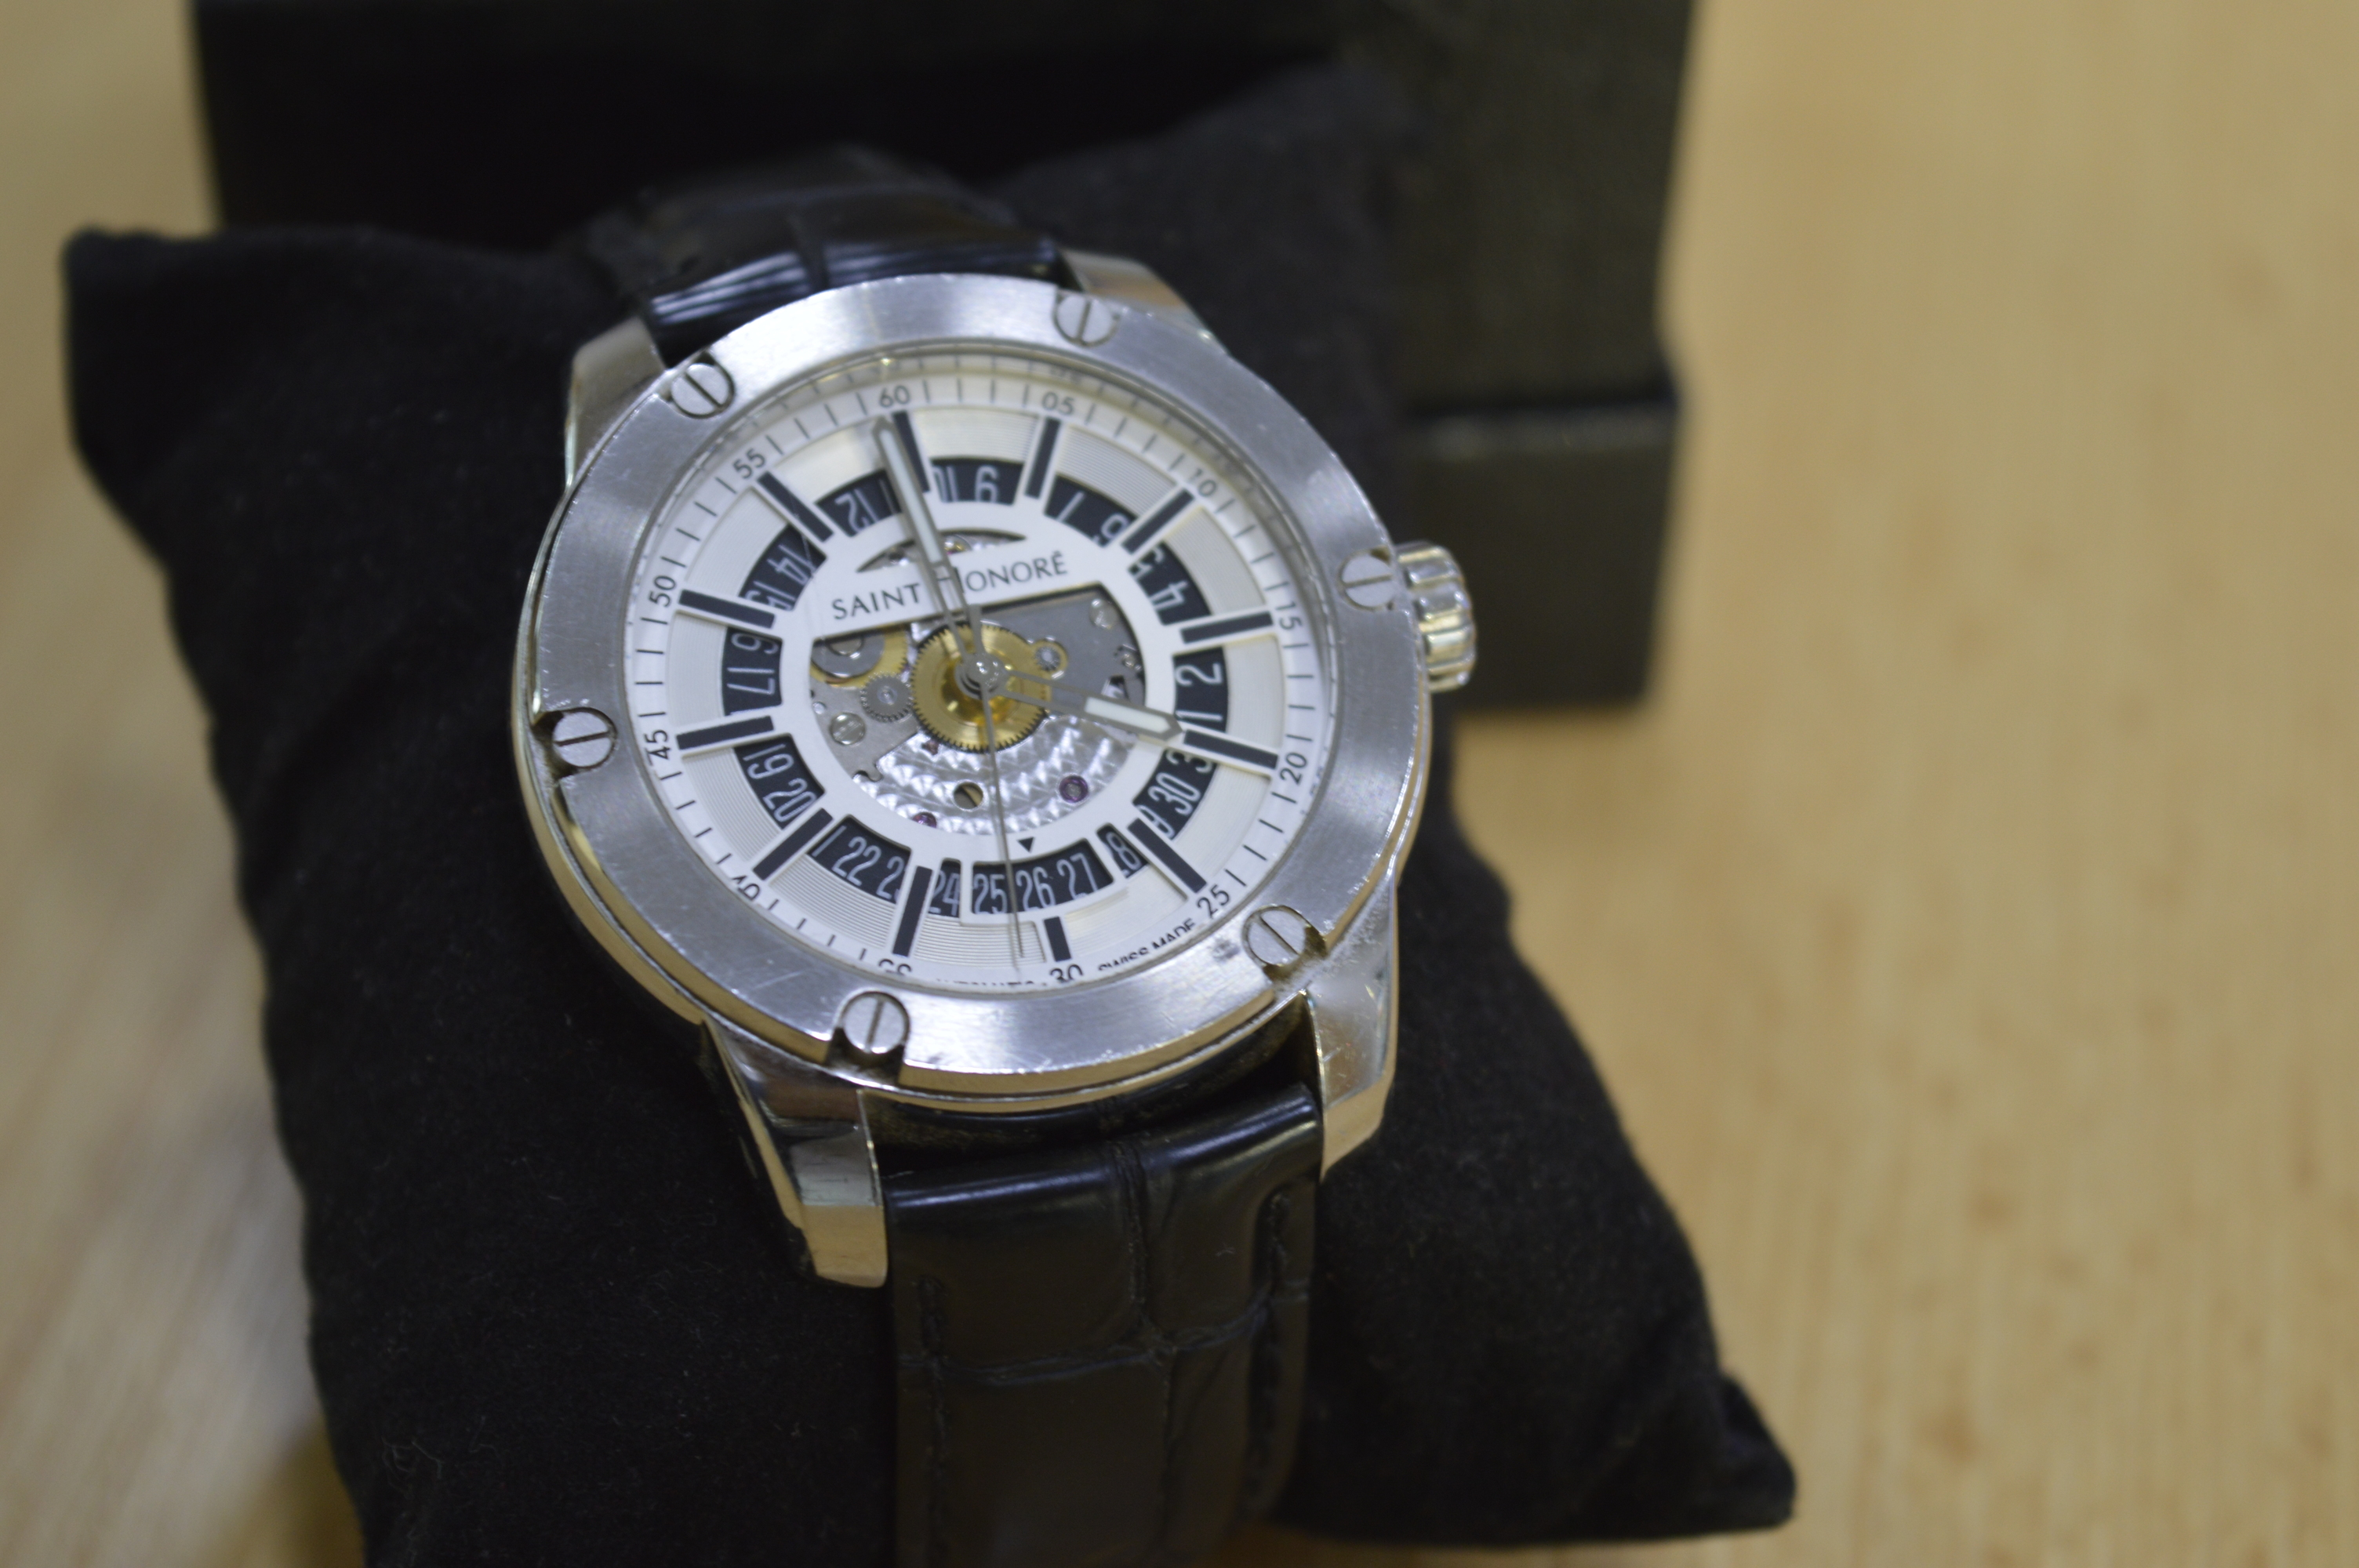 Ceas Saint Honore The ARTCODE Open dial